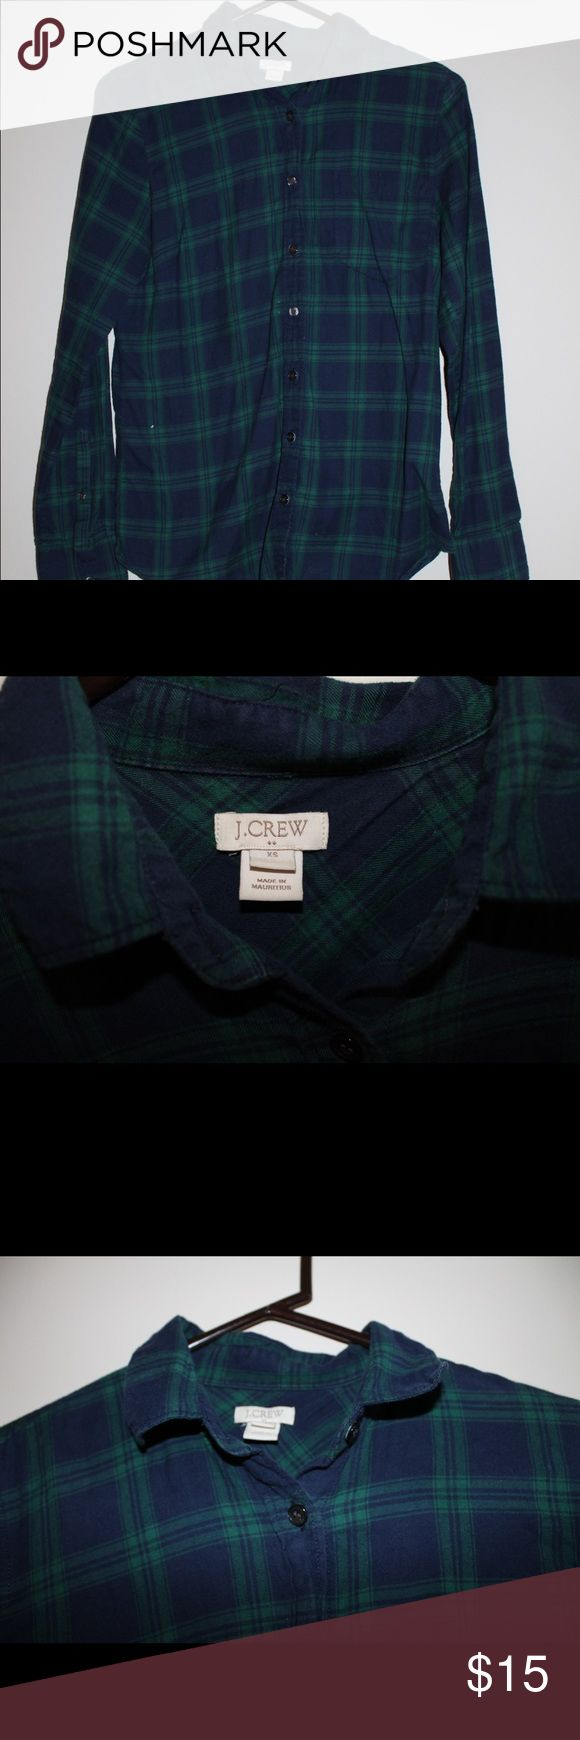 J.Crew Green and Blue Plaid Flannel Size XS -Great condition -Flannel material J. Crew Tops